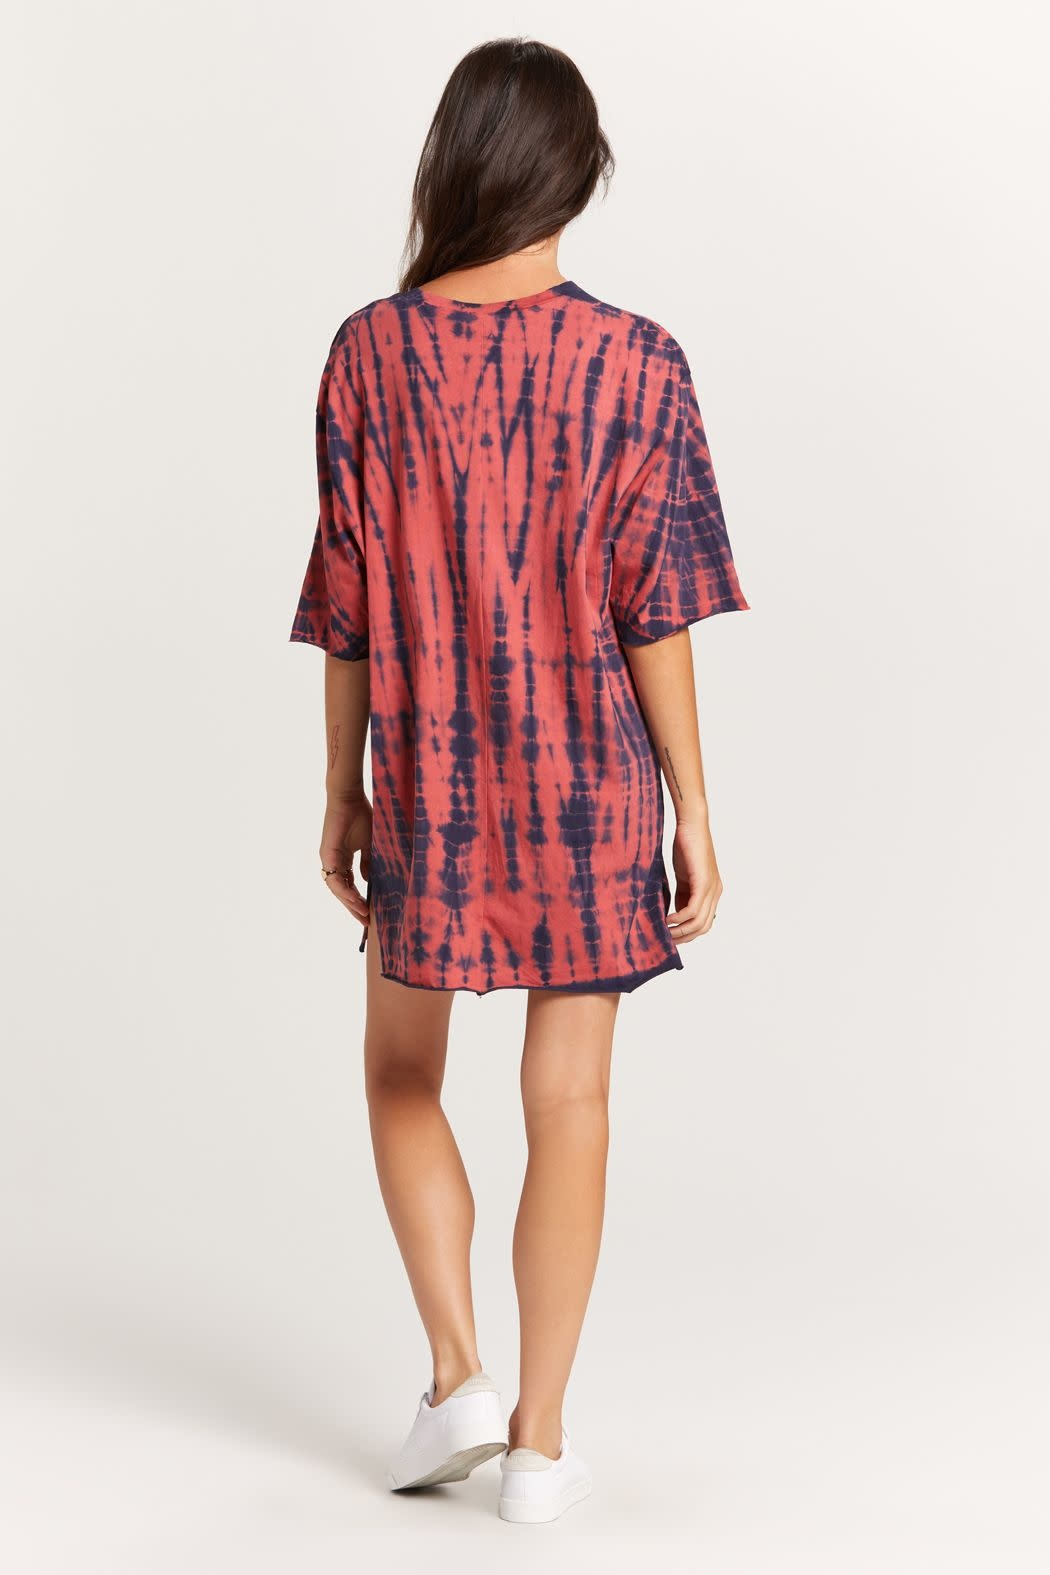 Seek The Label Tie Dye T-shirt Mini Dress